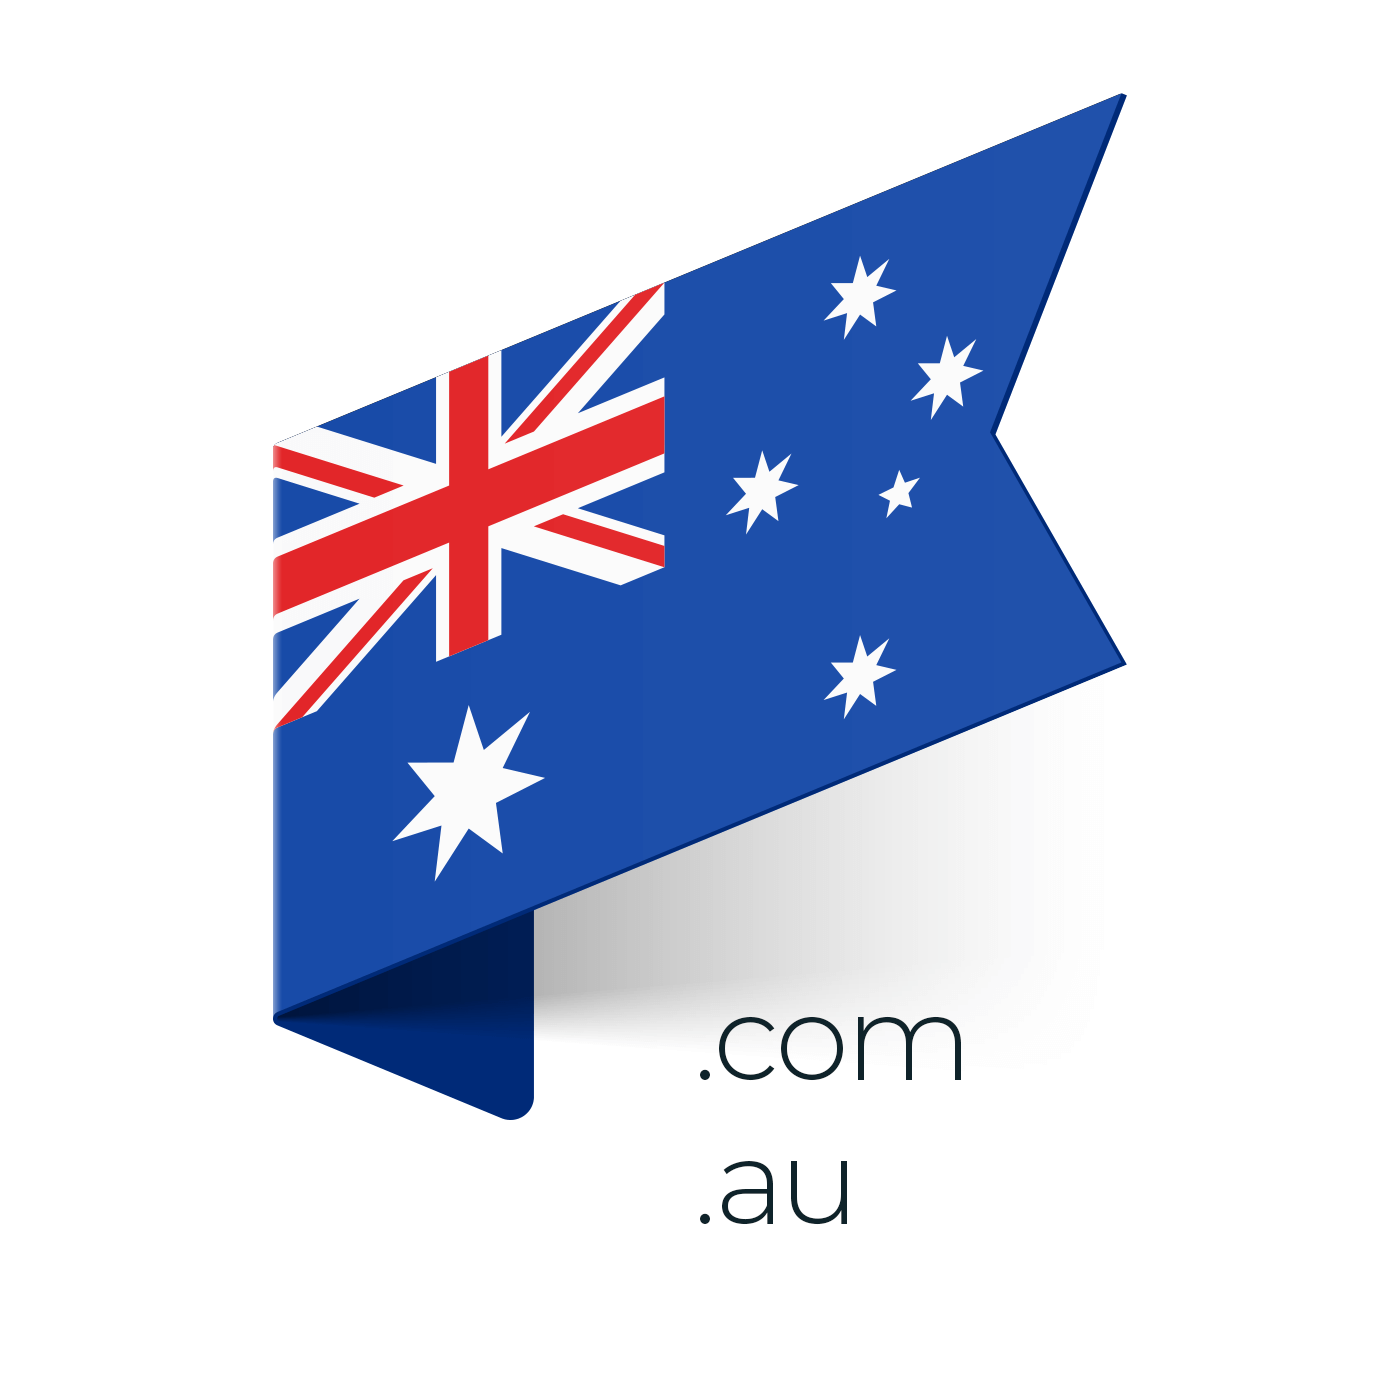 Starting a .com or .au online business in Australia with the help of Pure-Ecommerce.com